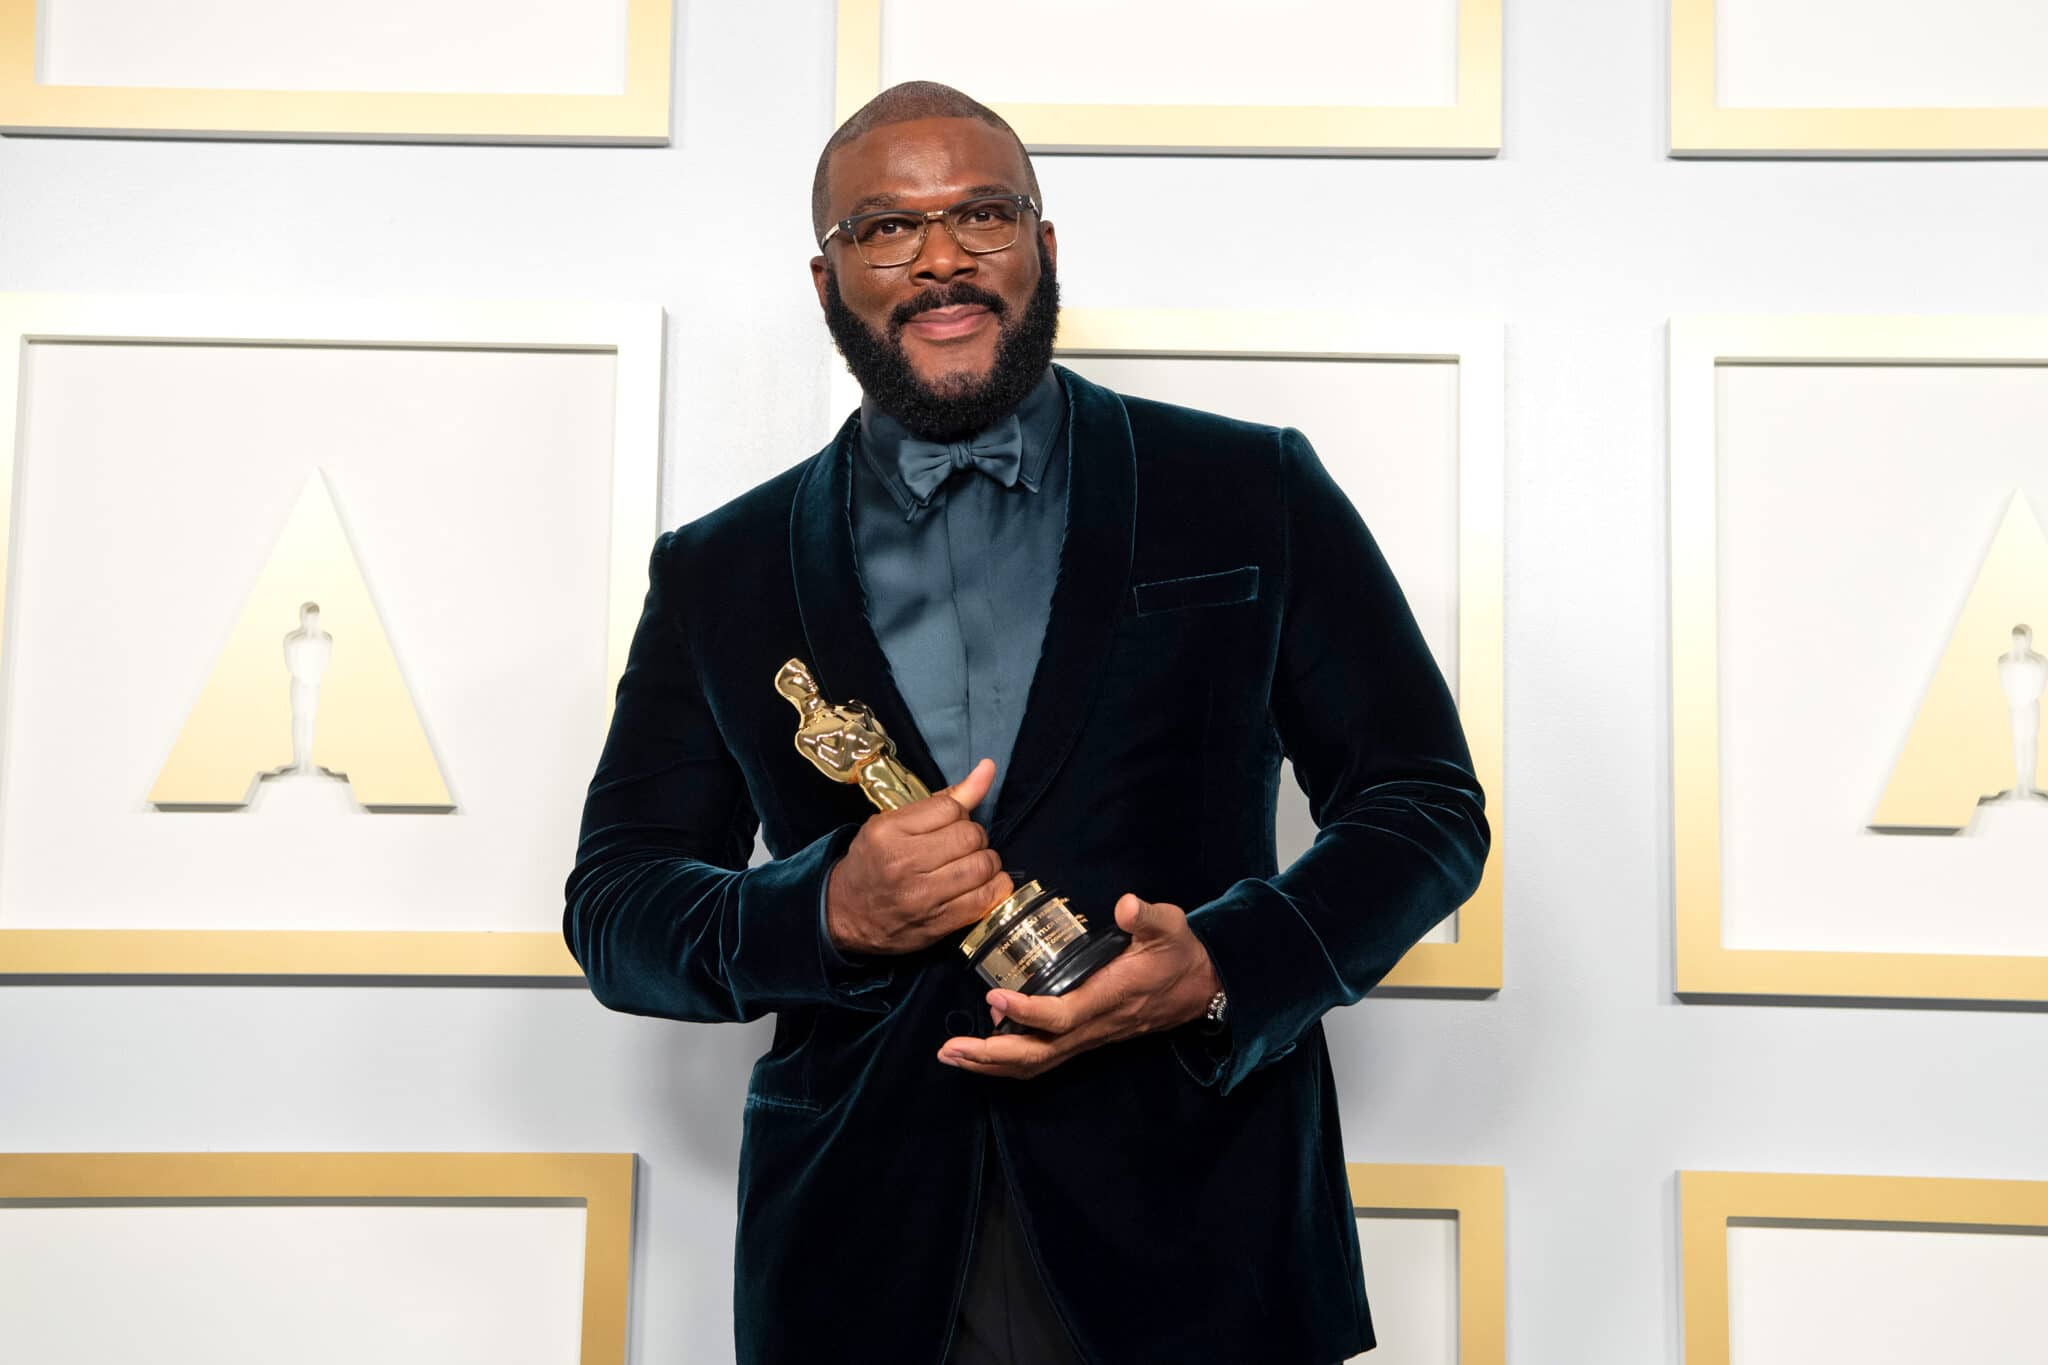 Tyler Perry Urges the World to 'Refuse Hate' in Powerful Oscars Speech